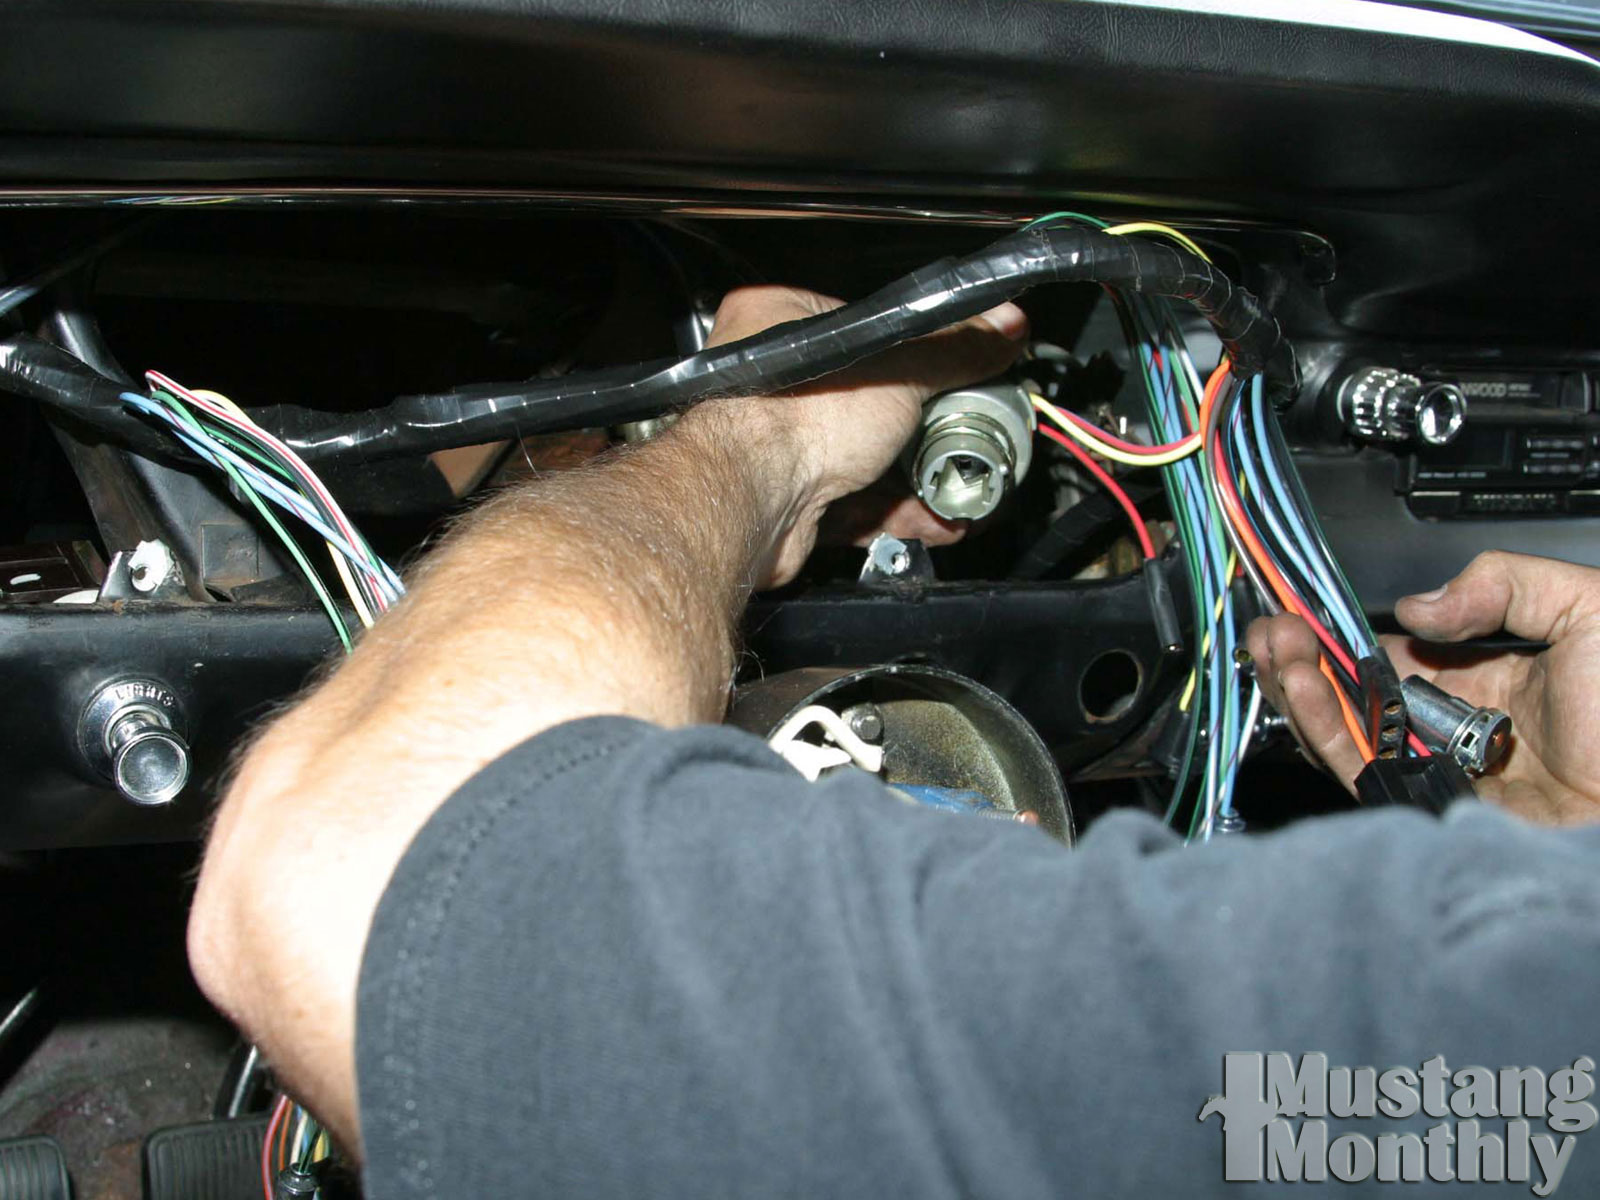 How To Install A New Wiring Harness For Your Ford Mustang Rhmustangandfords: 65 Mustang Wiring Harness At Gmaili.net